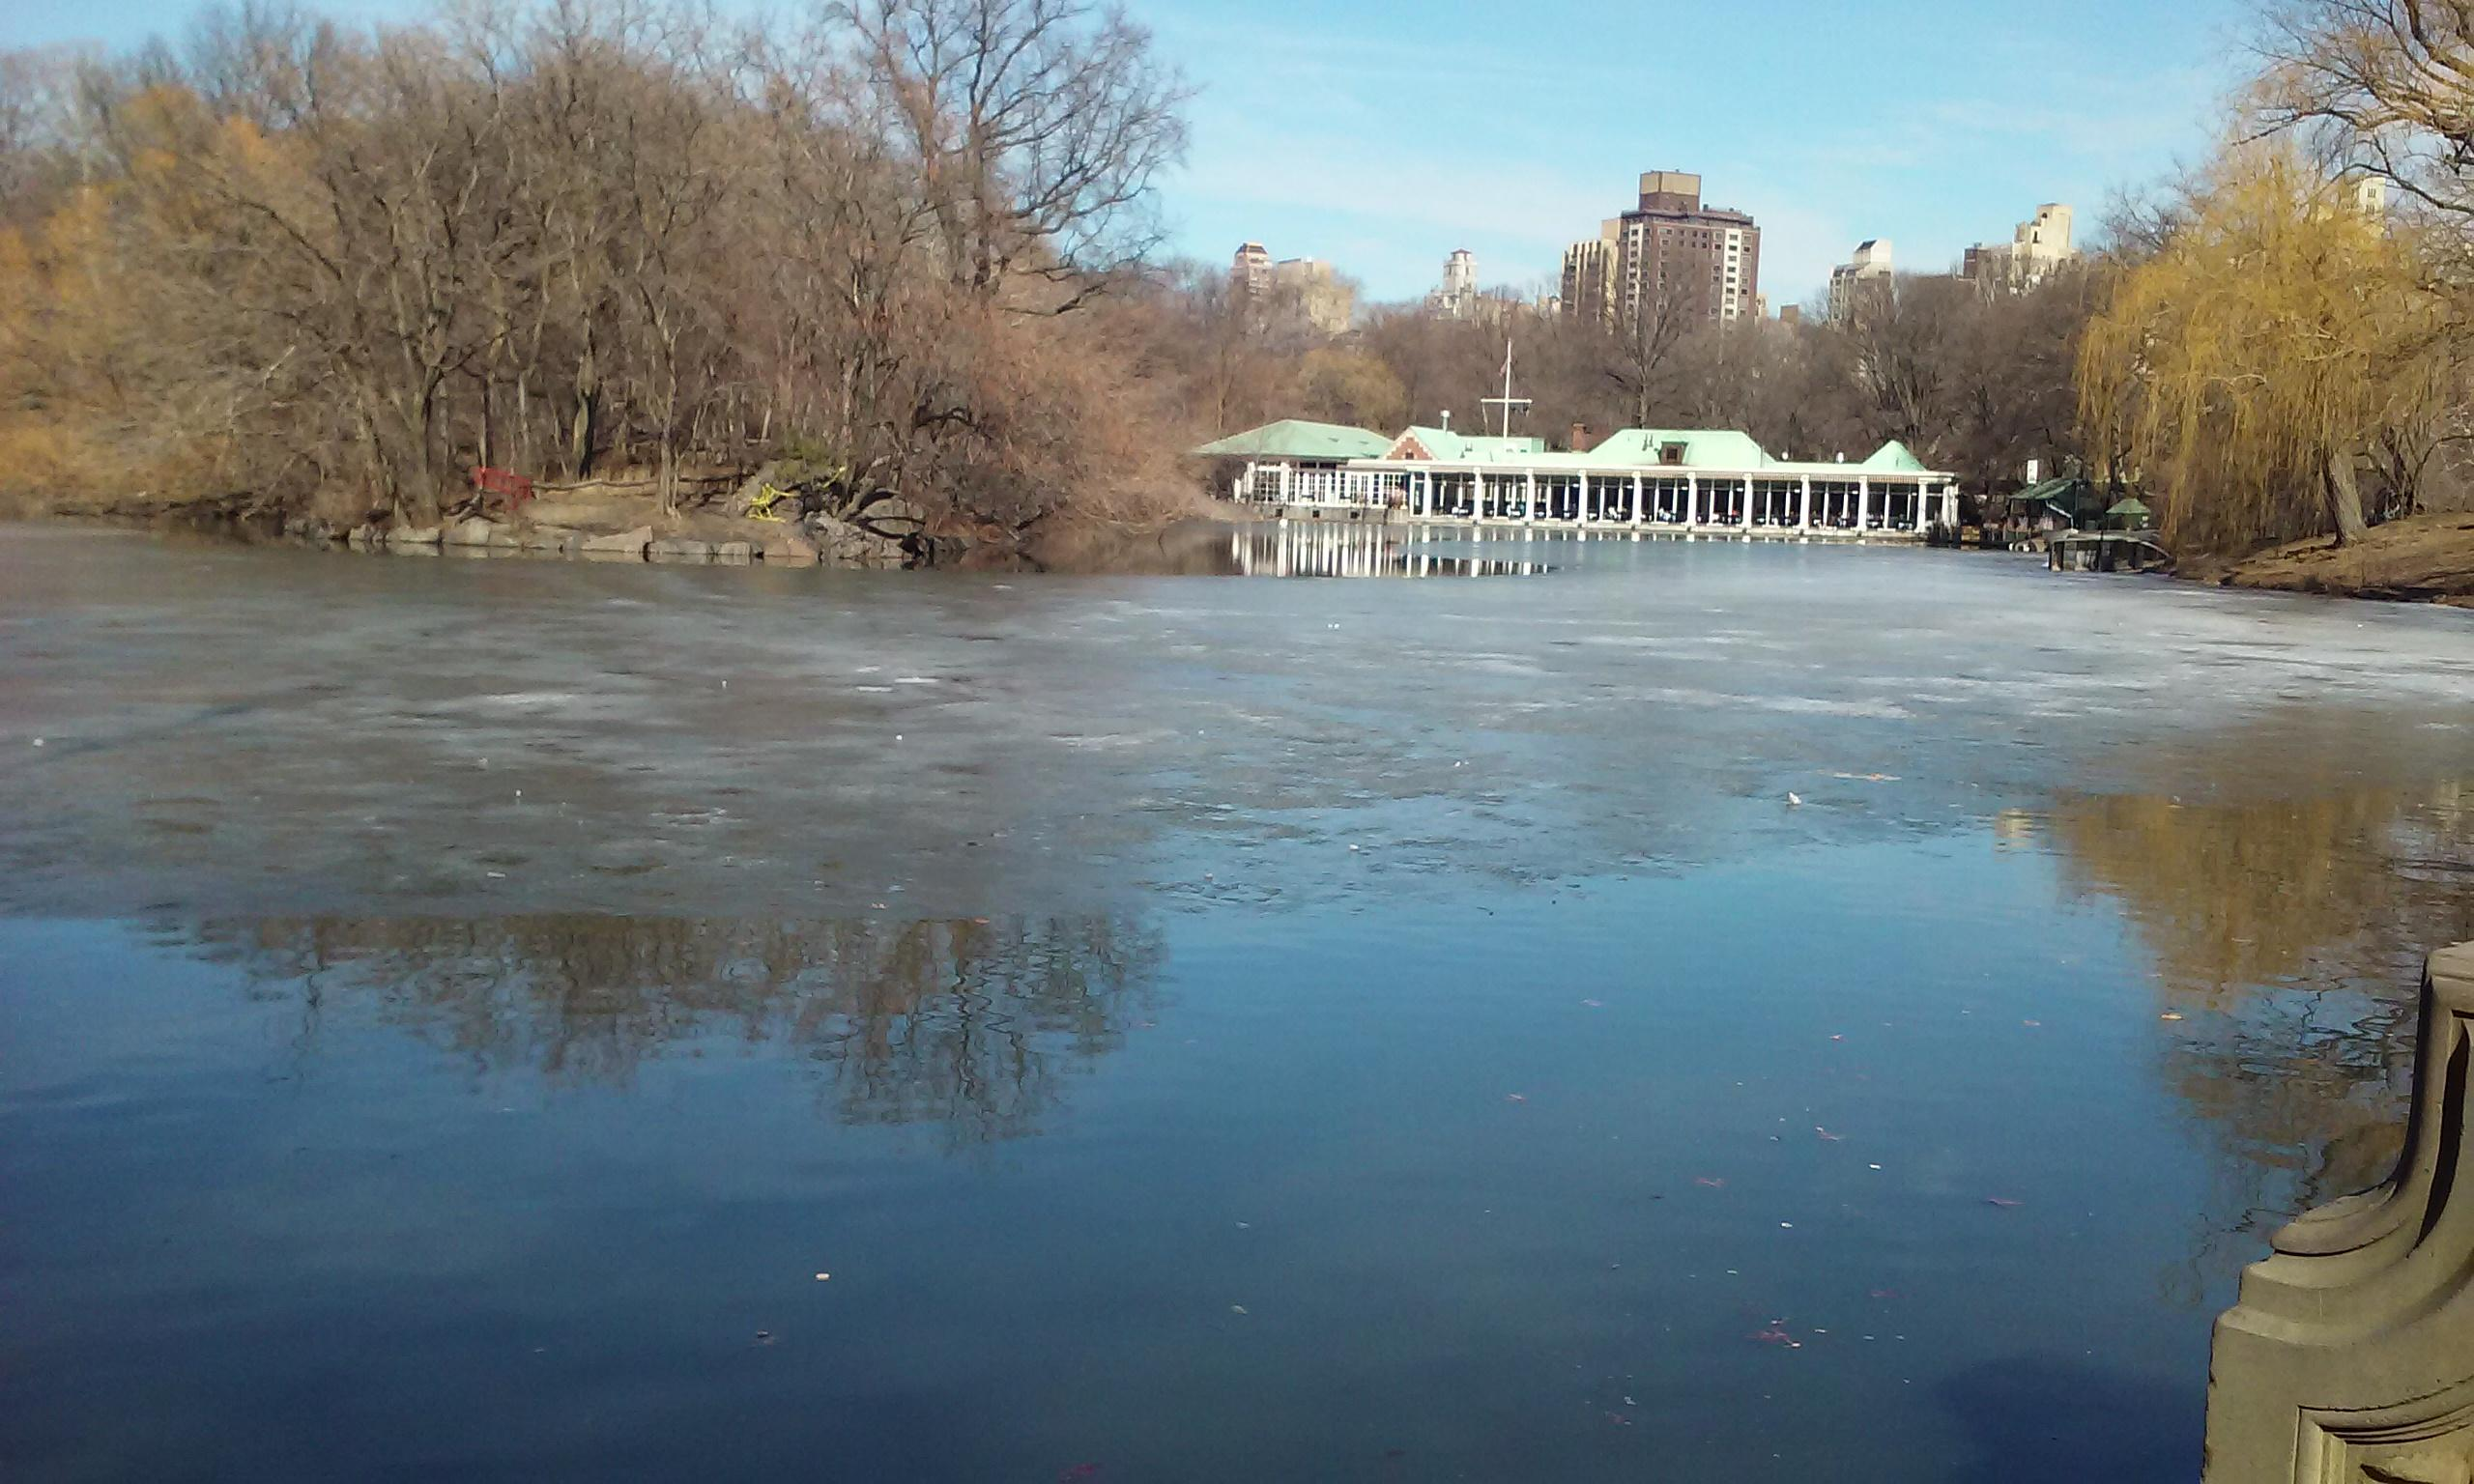 Rent a boat or watch ducks at the duck pond in Central Park.